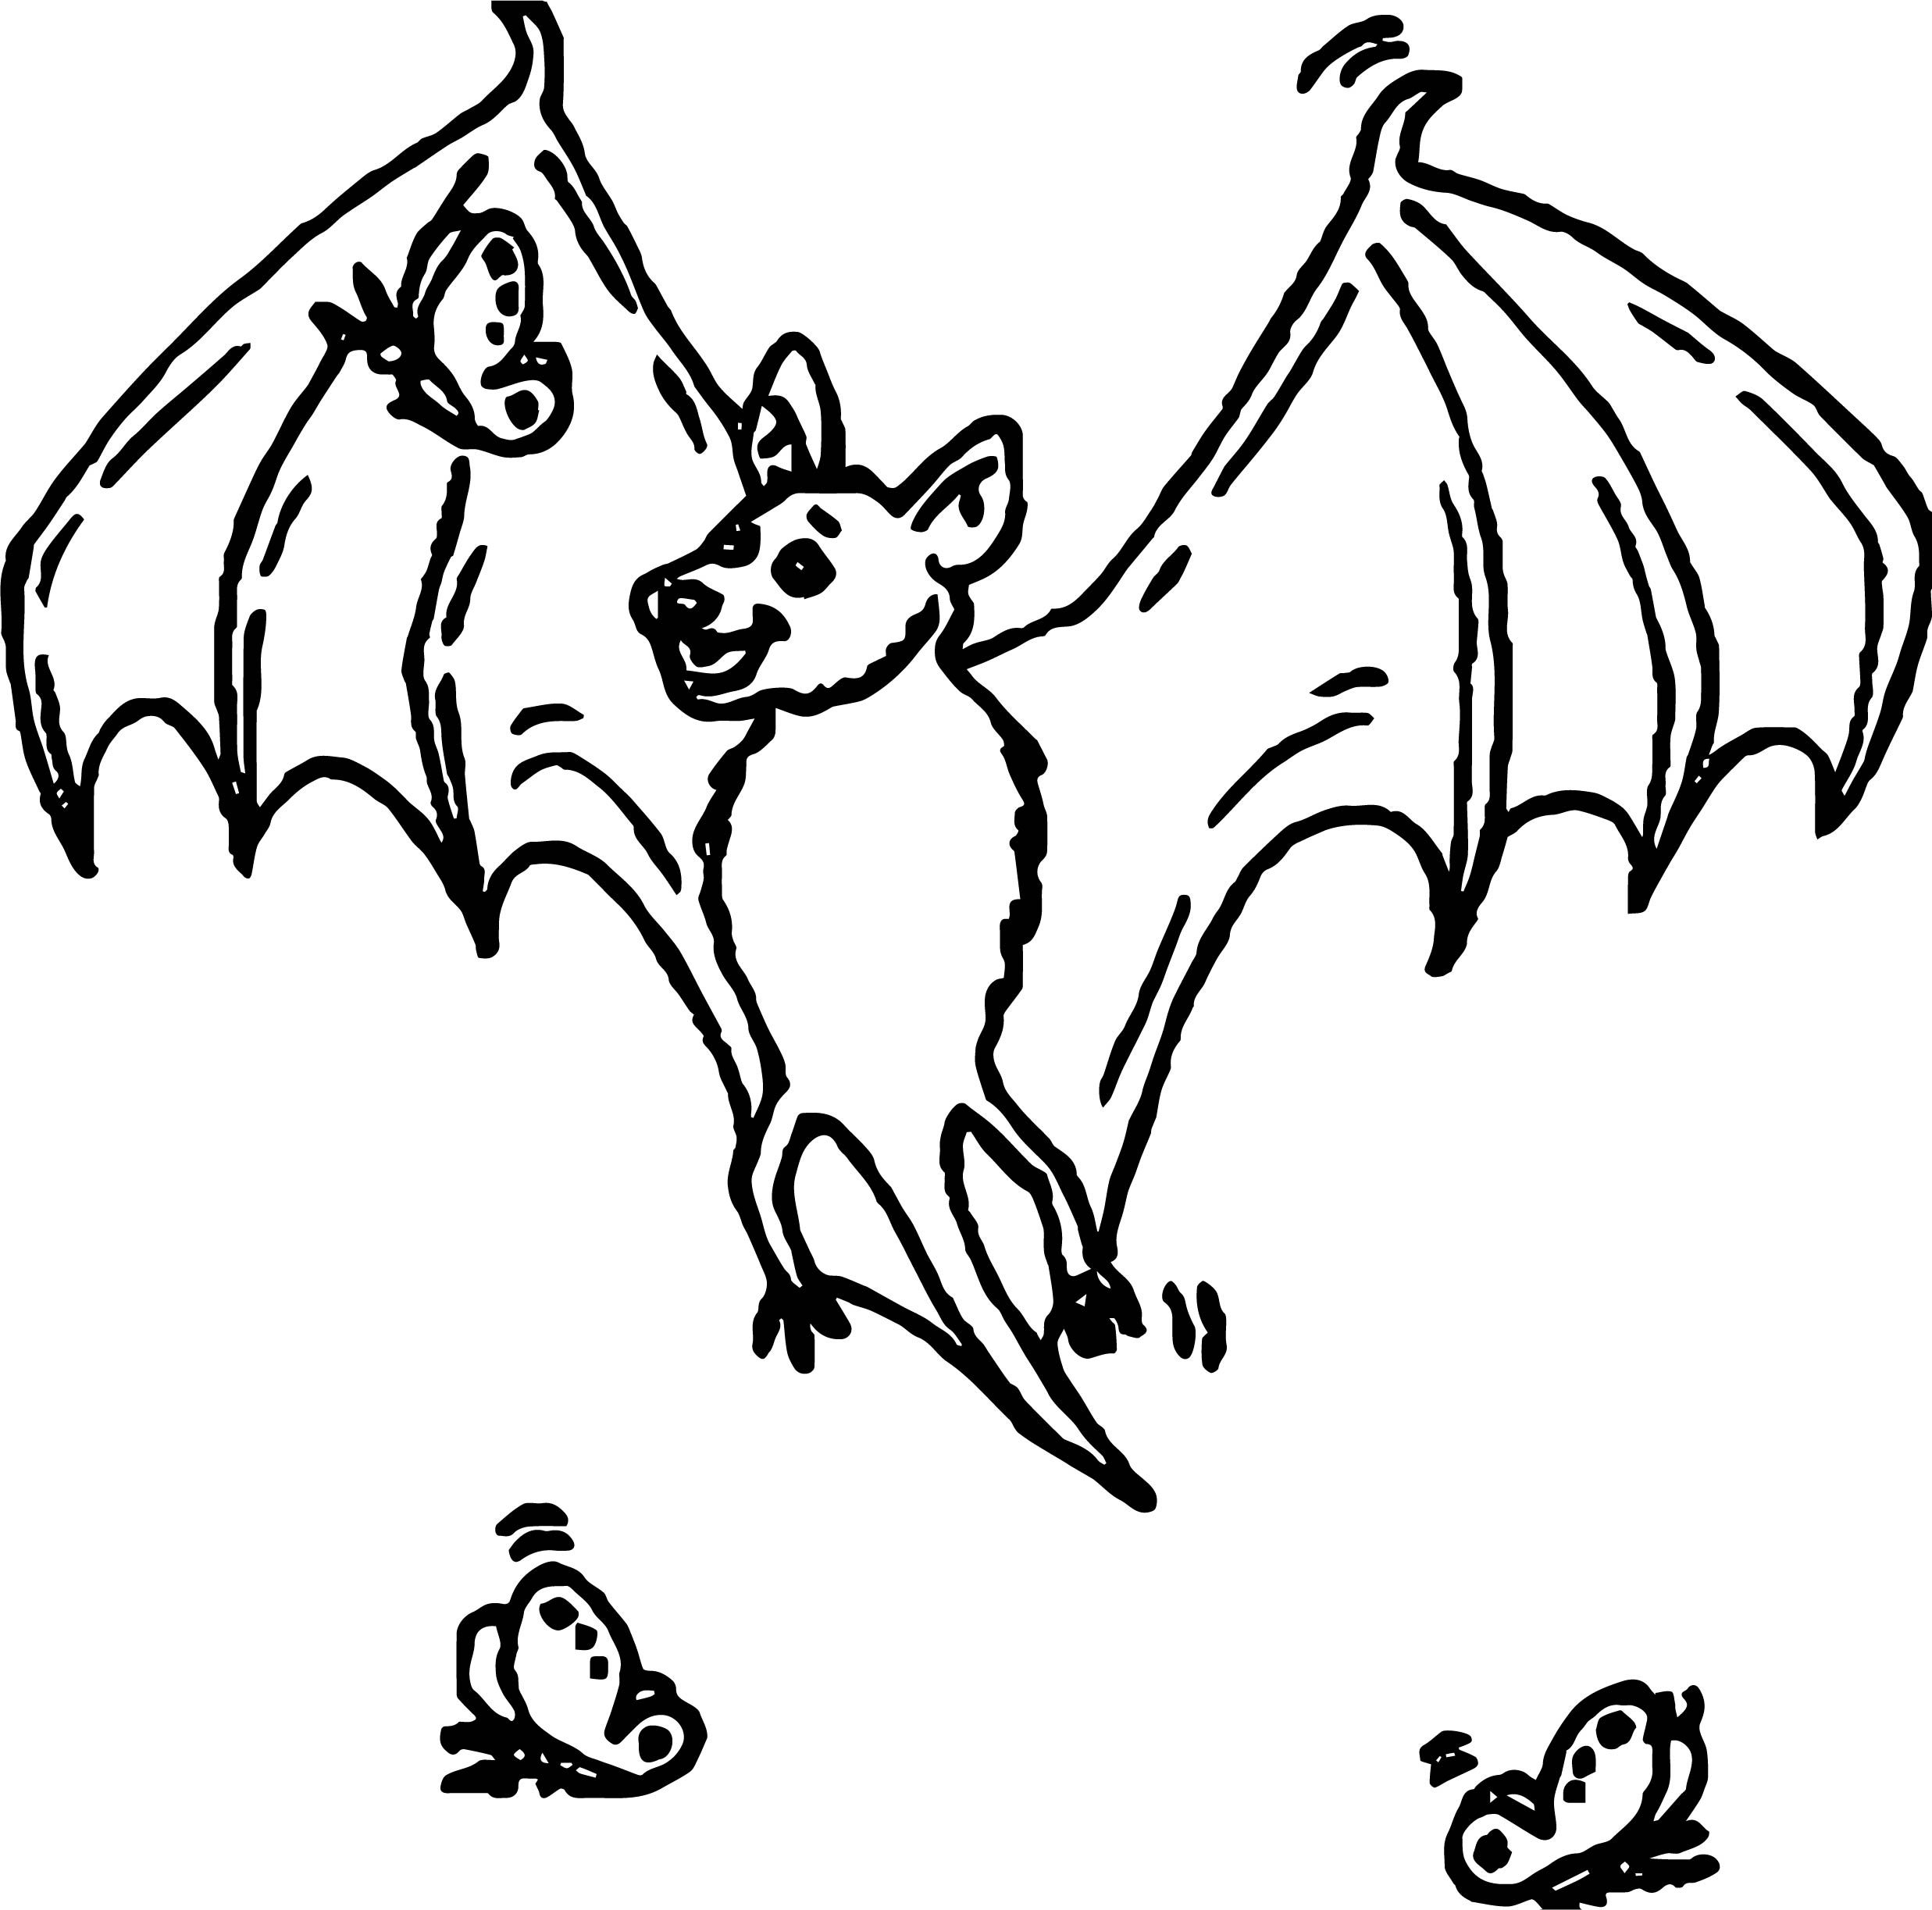 Bat Butterfly Coloring Page | Wecoloringpage.com